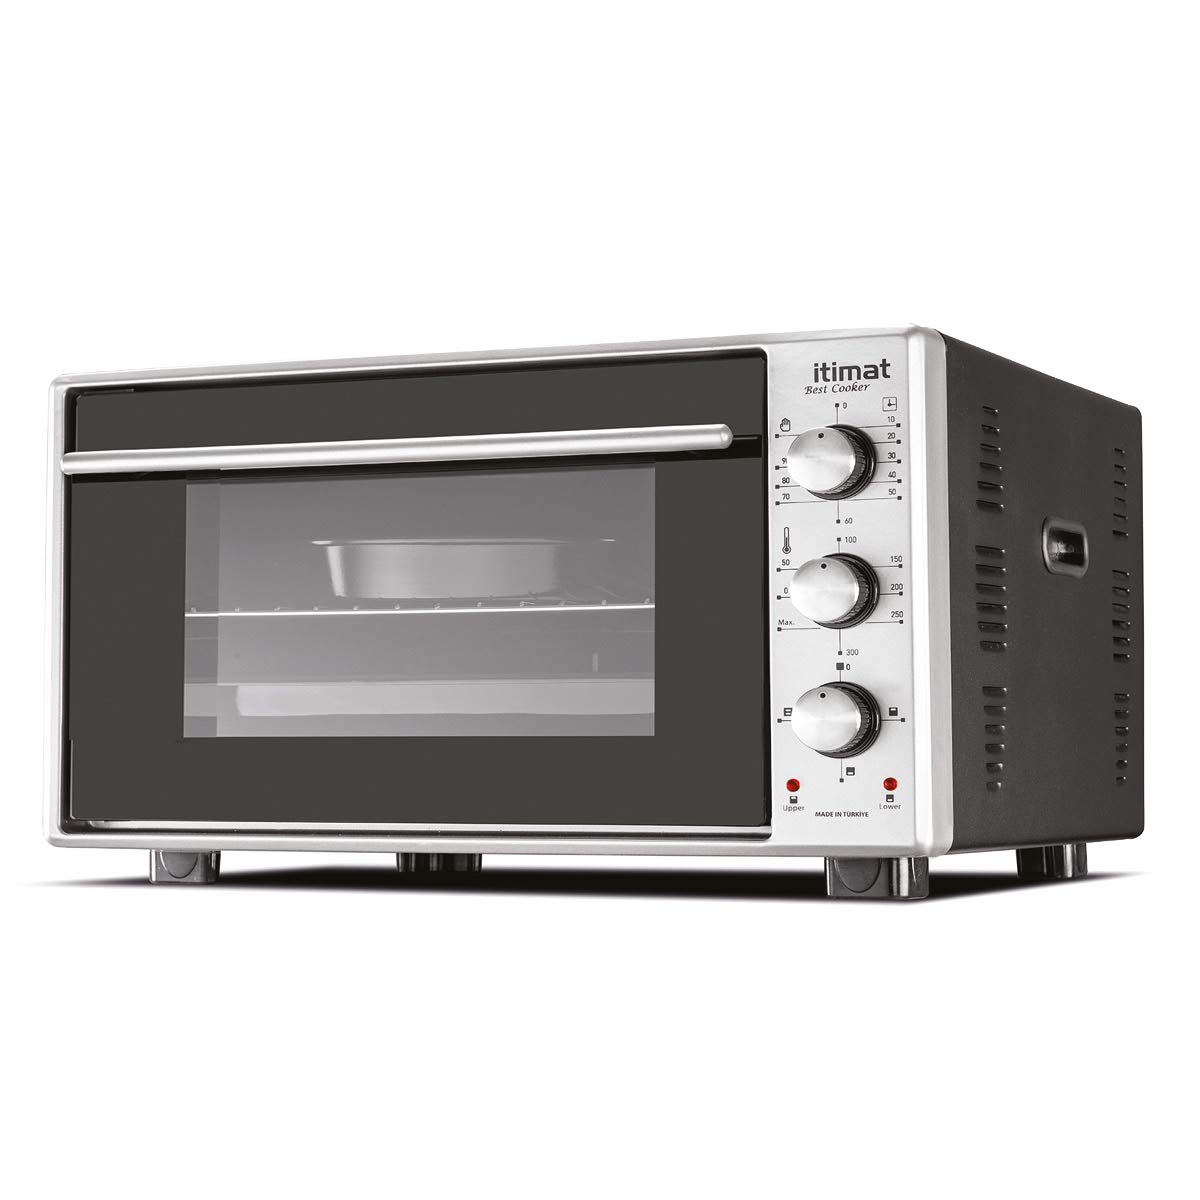 Itimat - Horno de doble cristal con ventilador turbo (60 L), color ...